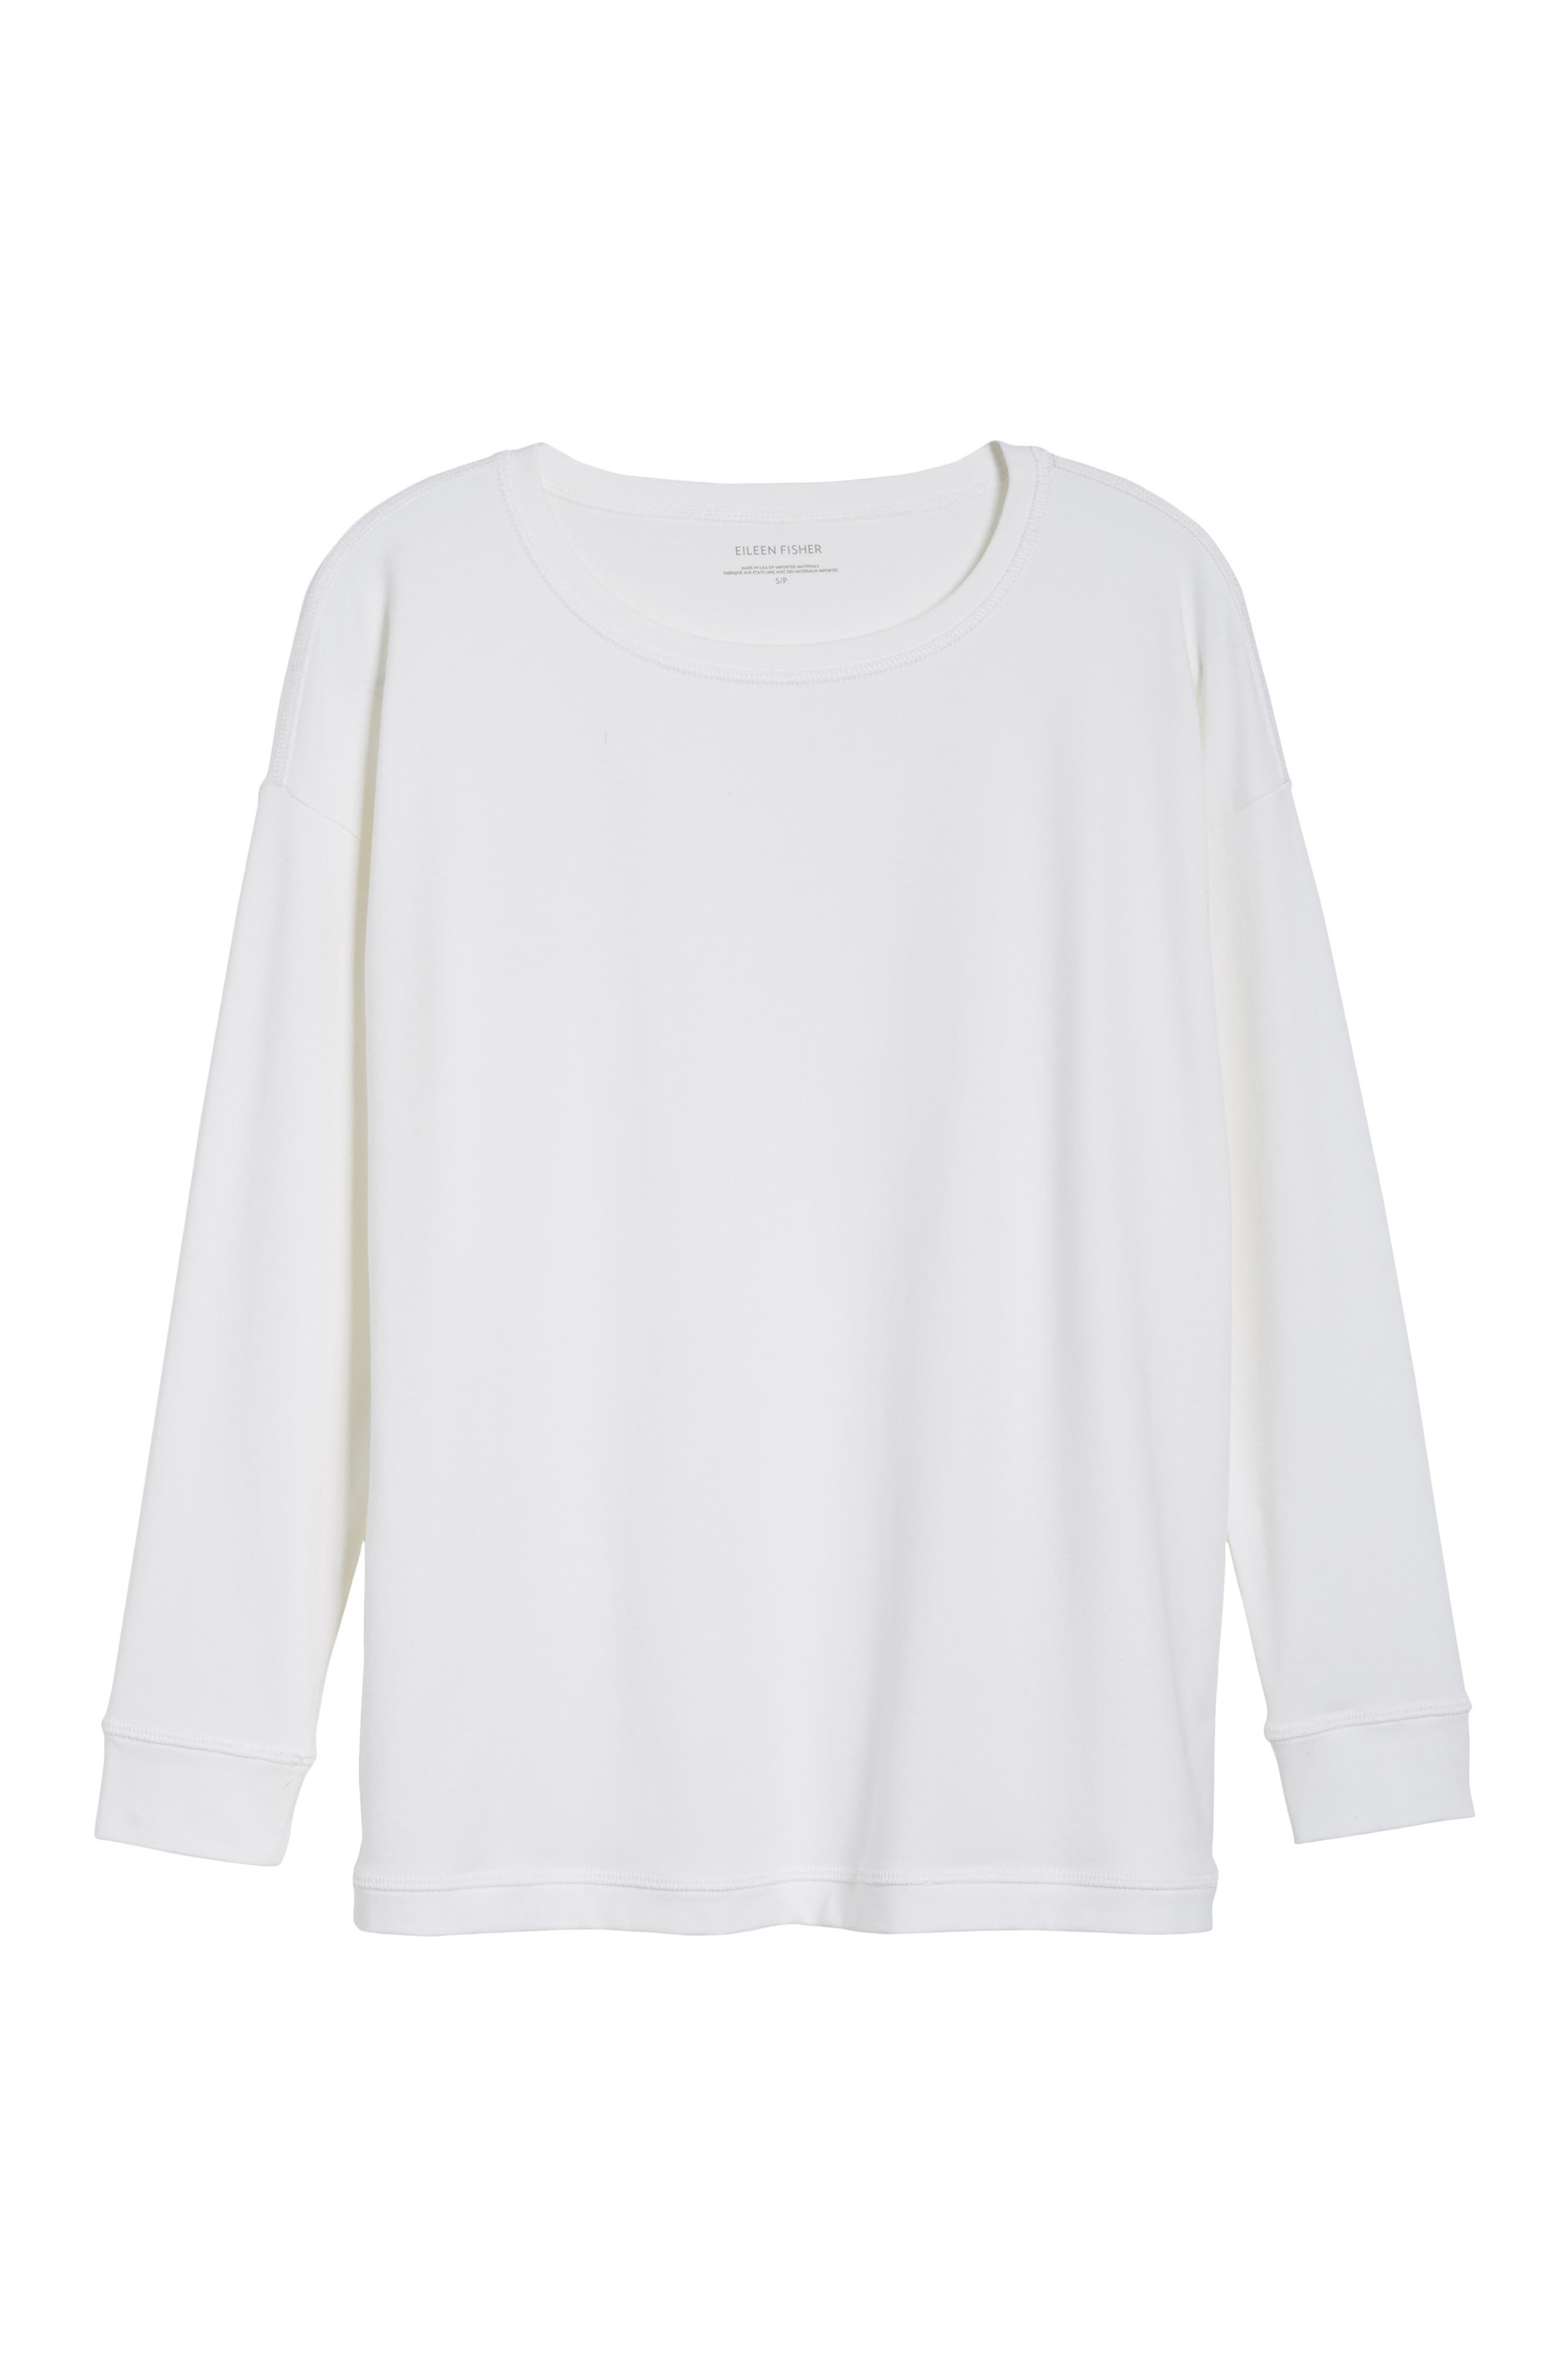 Jewel Neck Organic Stretch Cotton Tee,                             Alternate thumbnail 6, color,                             White